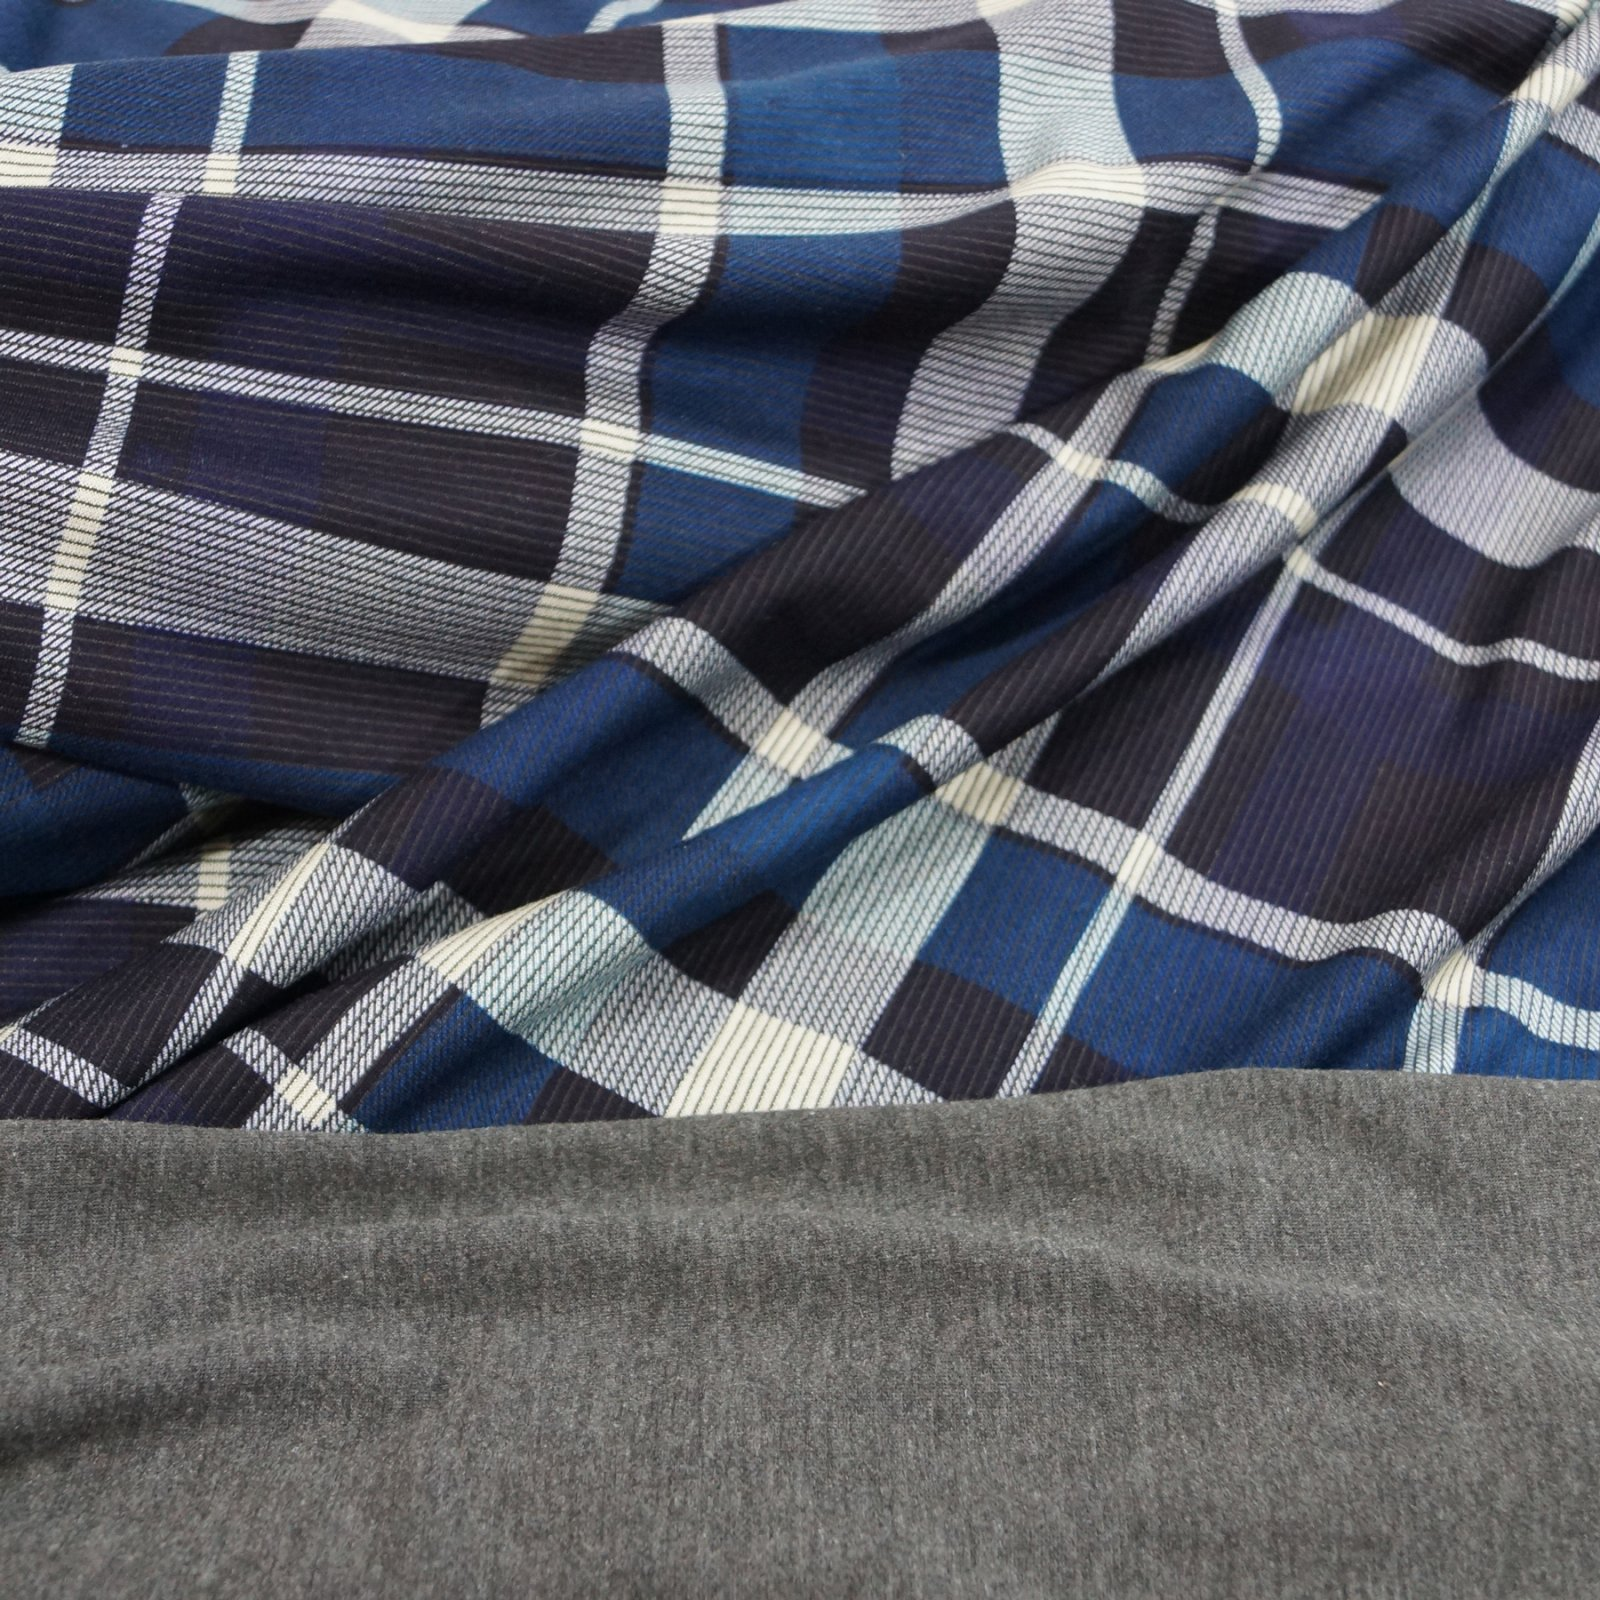 Rayon Double Knit - Navy and Royal Plaid